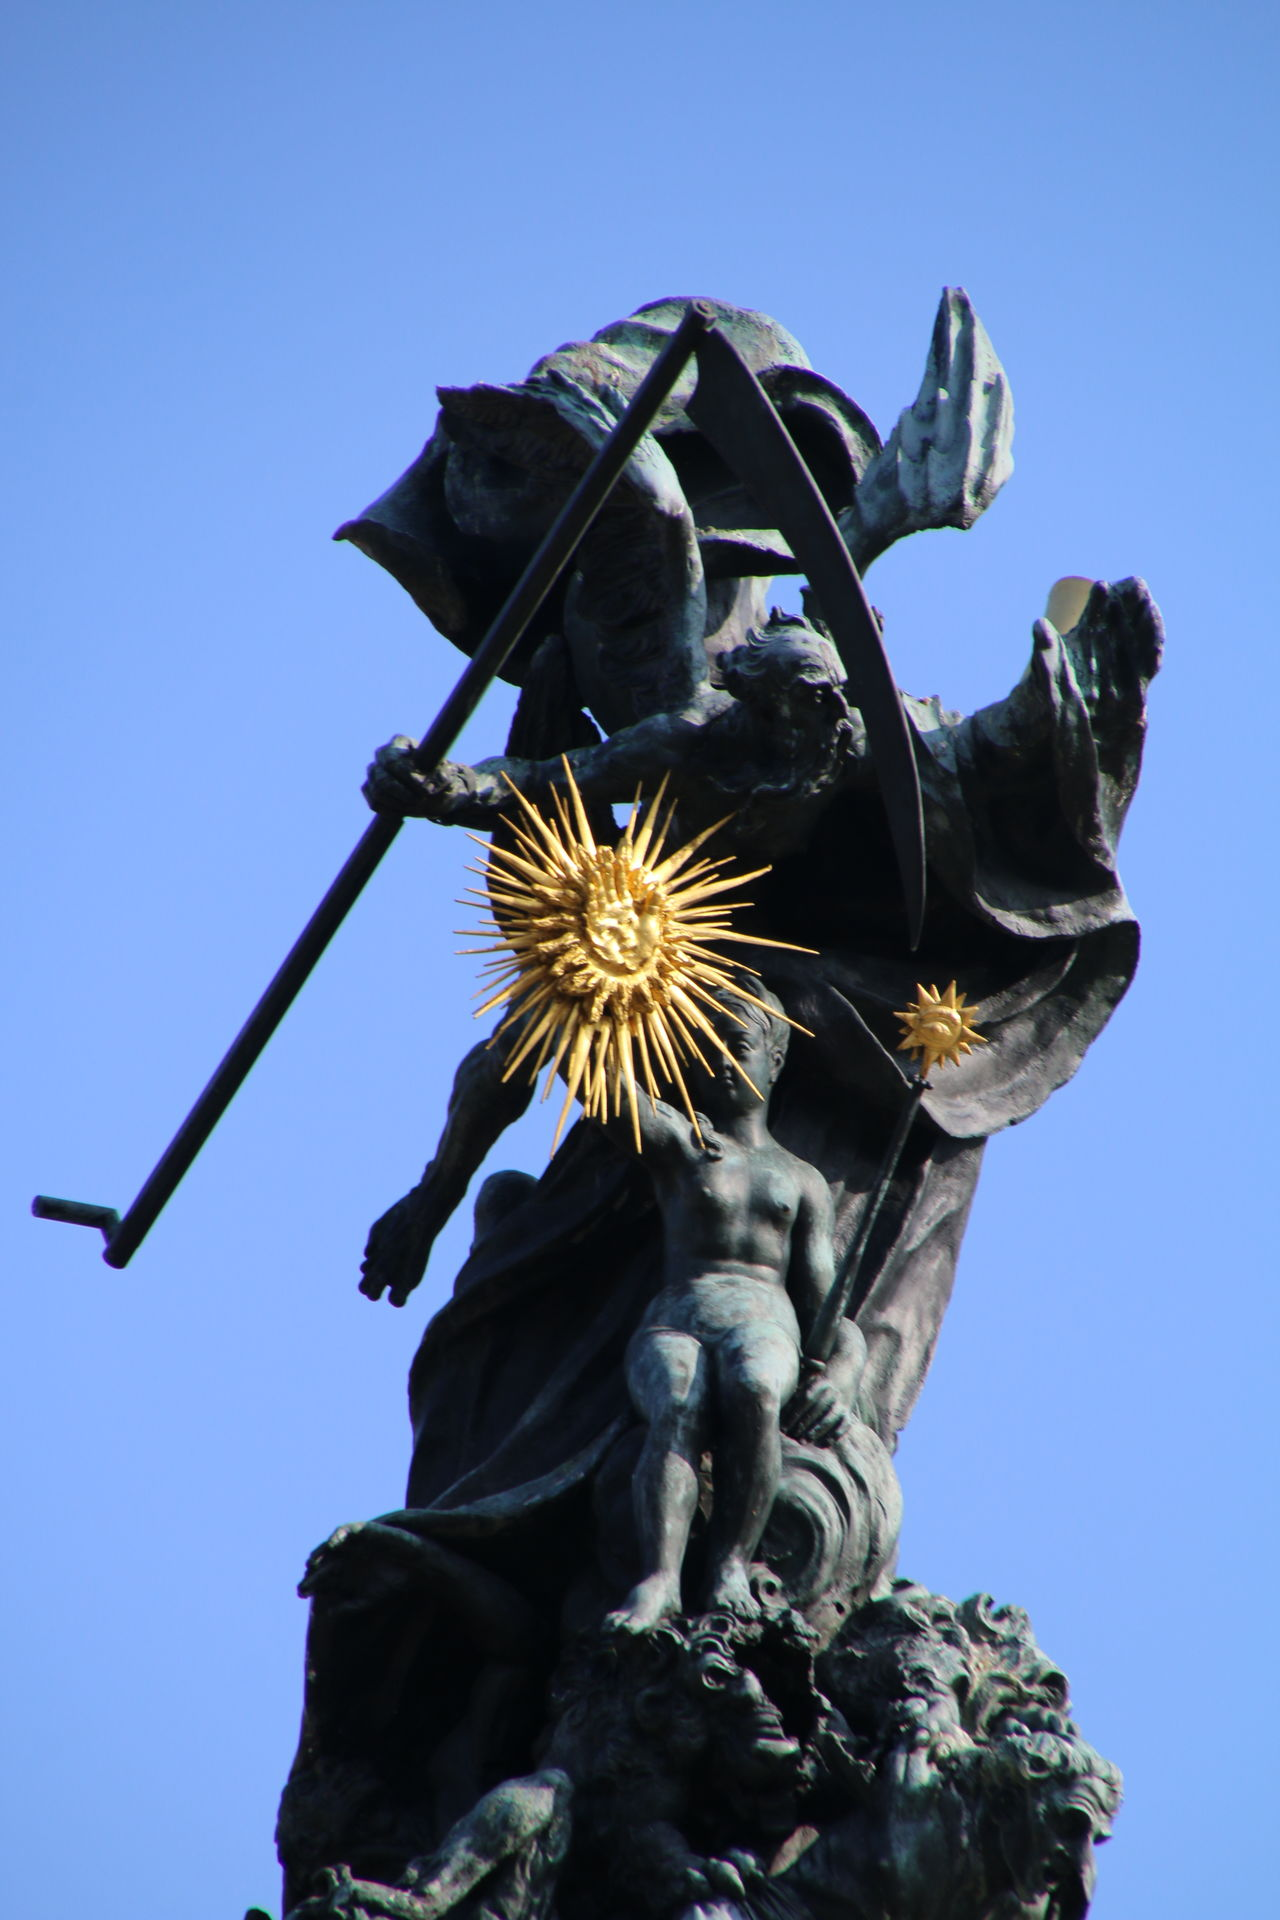 Archival No People Flower City Sword Sculpture Sky Outdoors Astrology Sign Day Mannheim